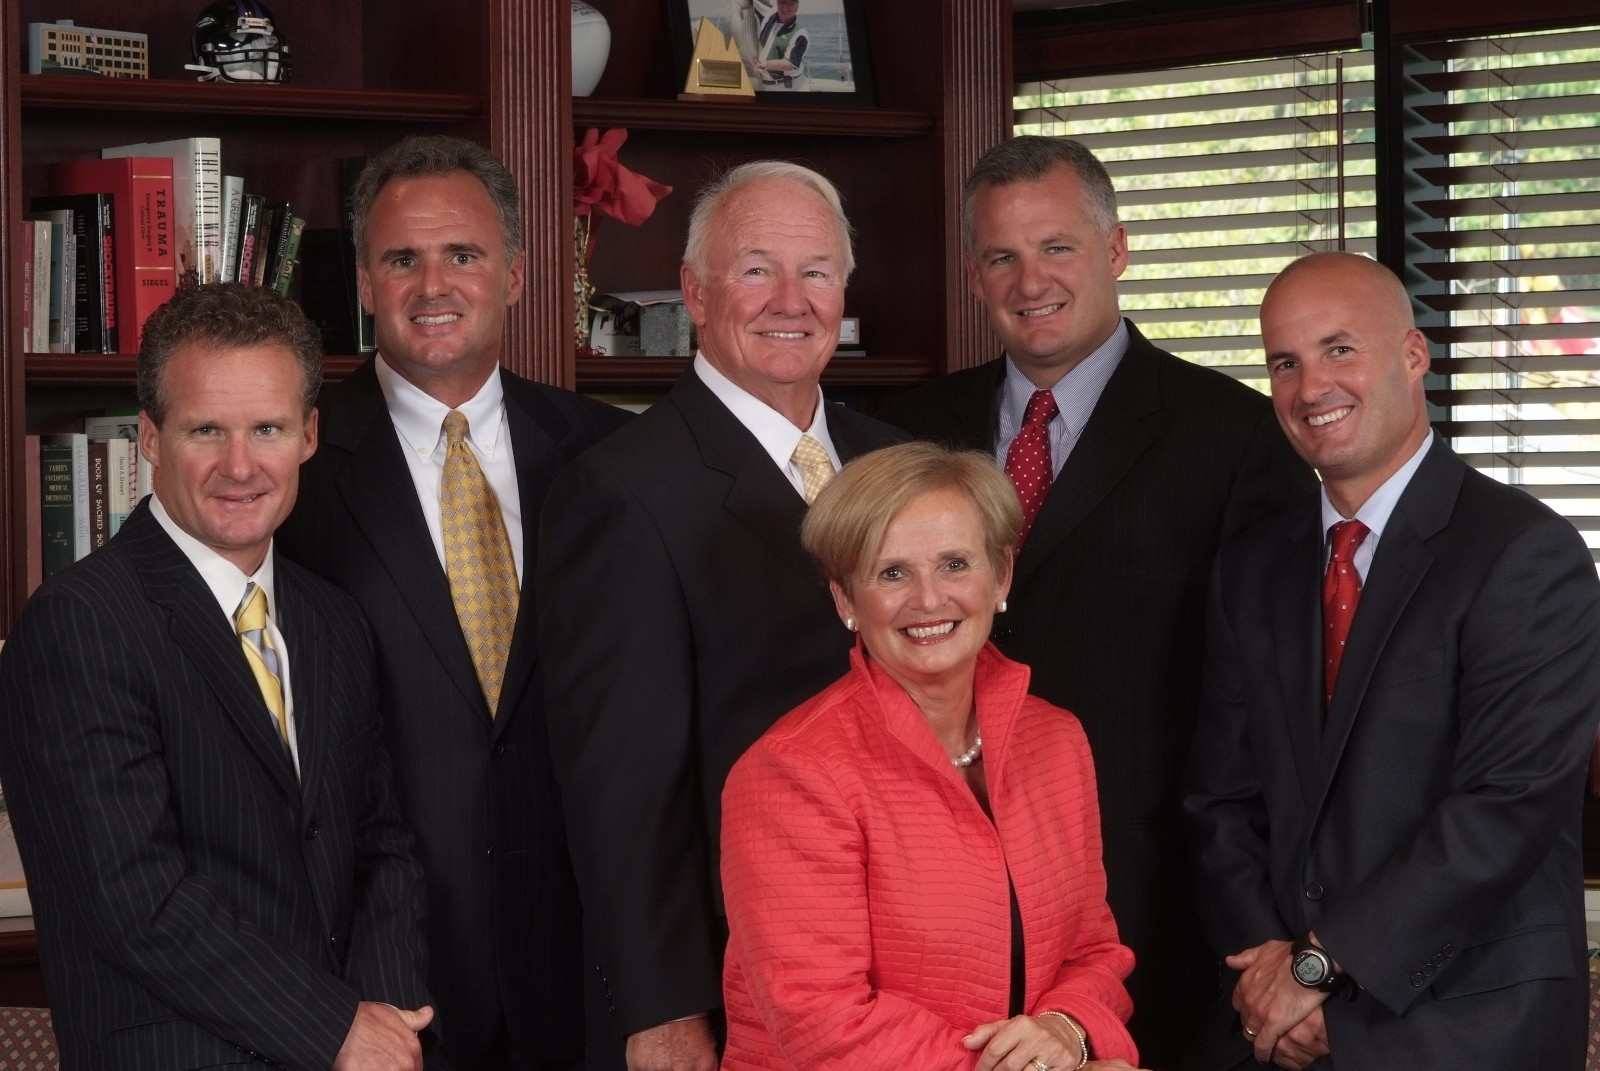 The Kelly Family: Frank Kelly Jr. and his wife, Janet, with their four sons (from left): John, Frank III, David and Bryan.